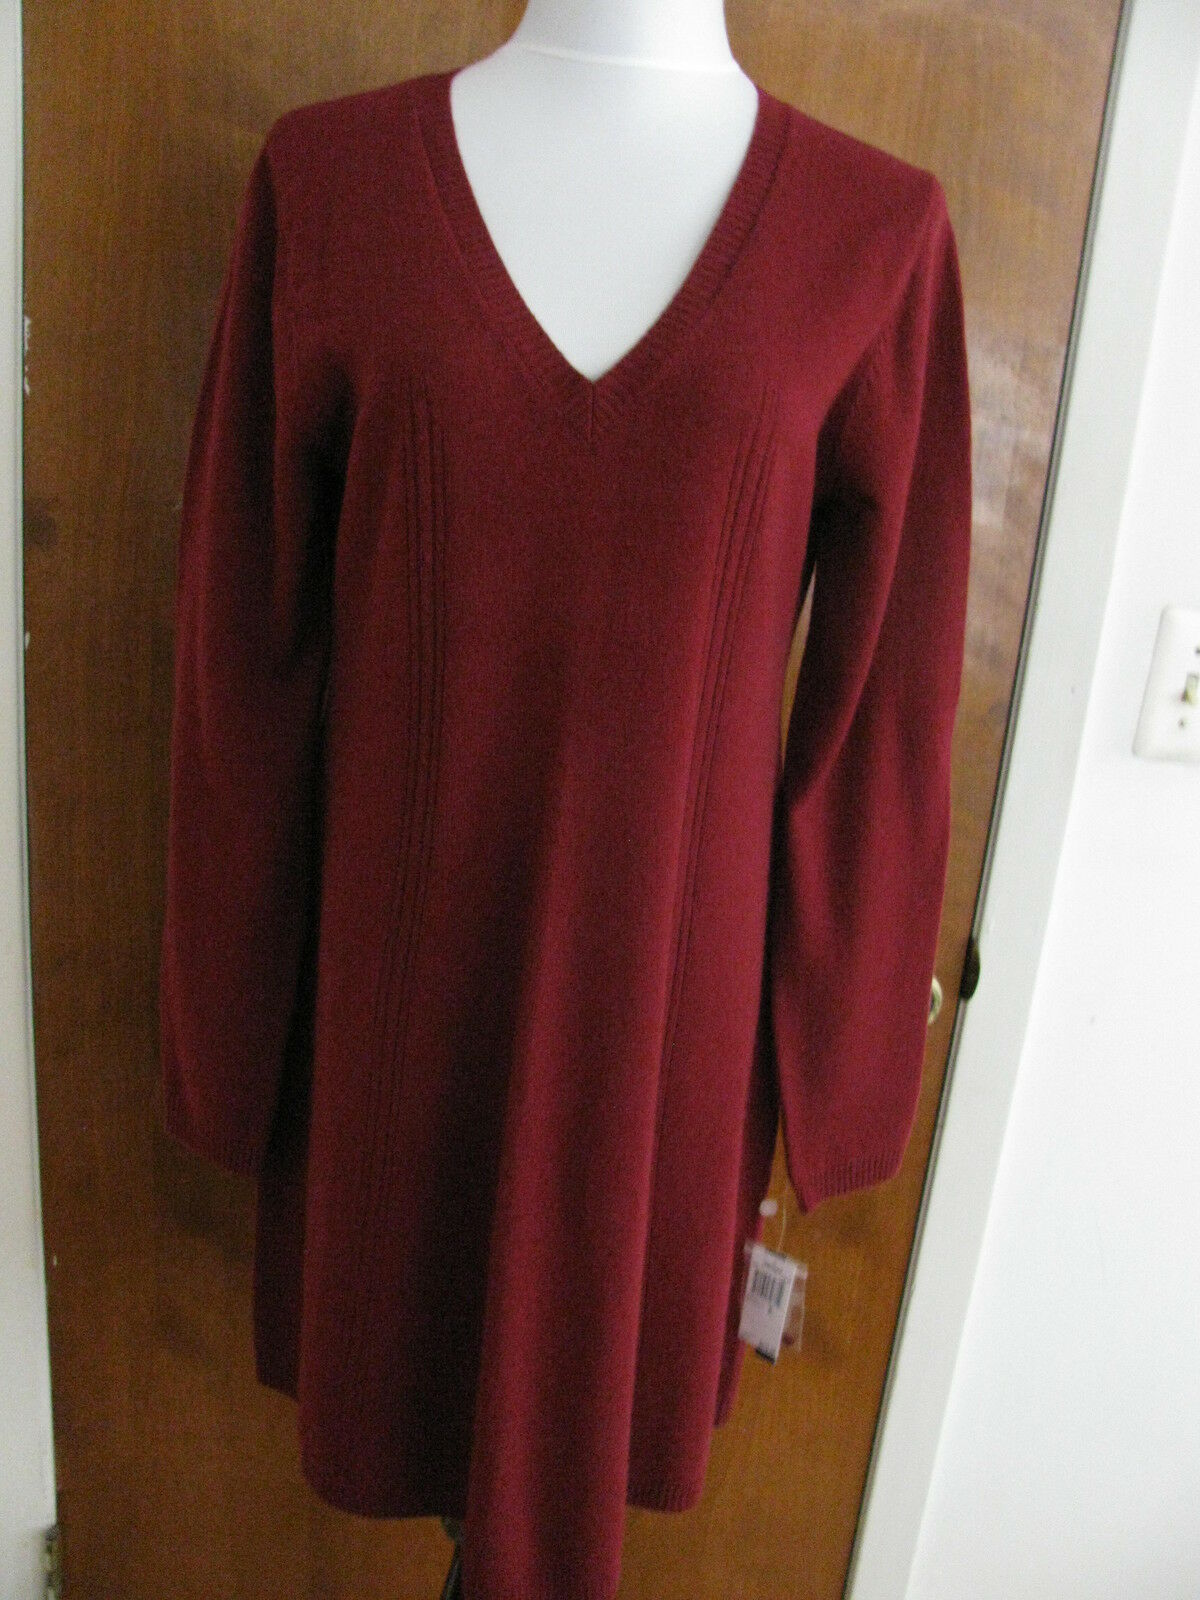 Chelsea&Theodore  women's burgundy wool cashmere detailed dress Xlarge NWT